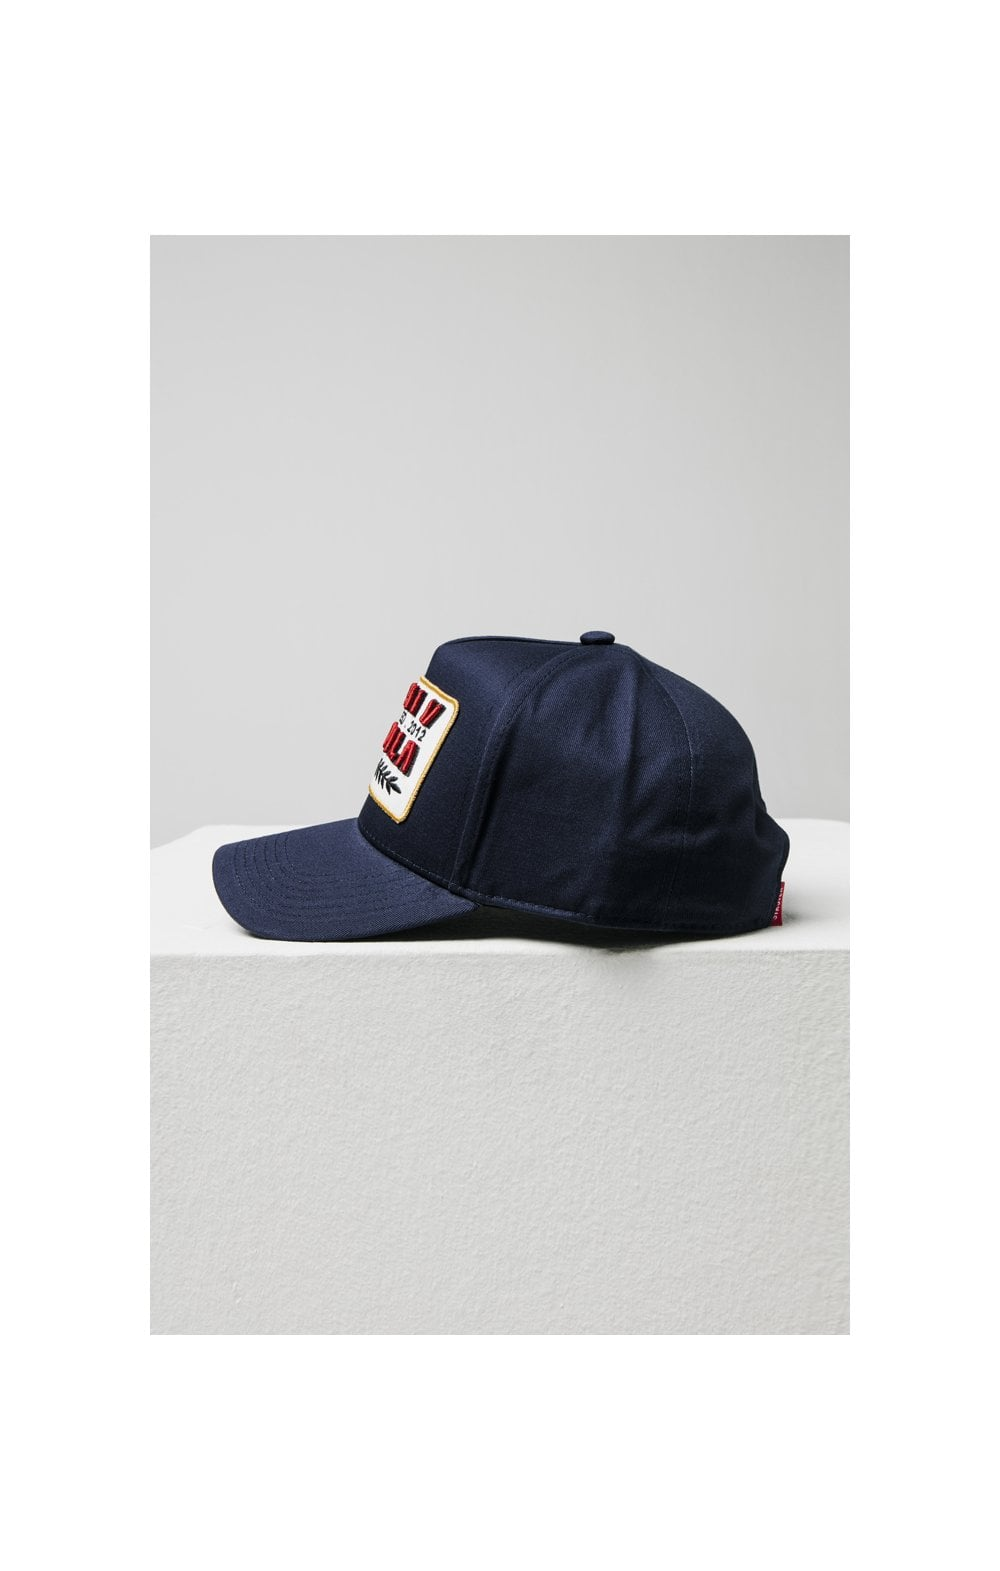 SikSilk Patch Full Trucker - Navy (3)